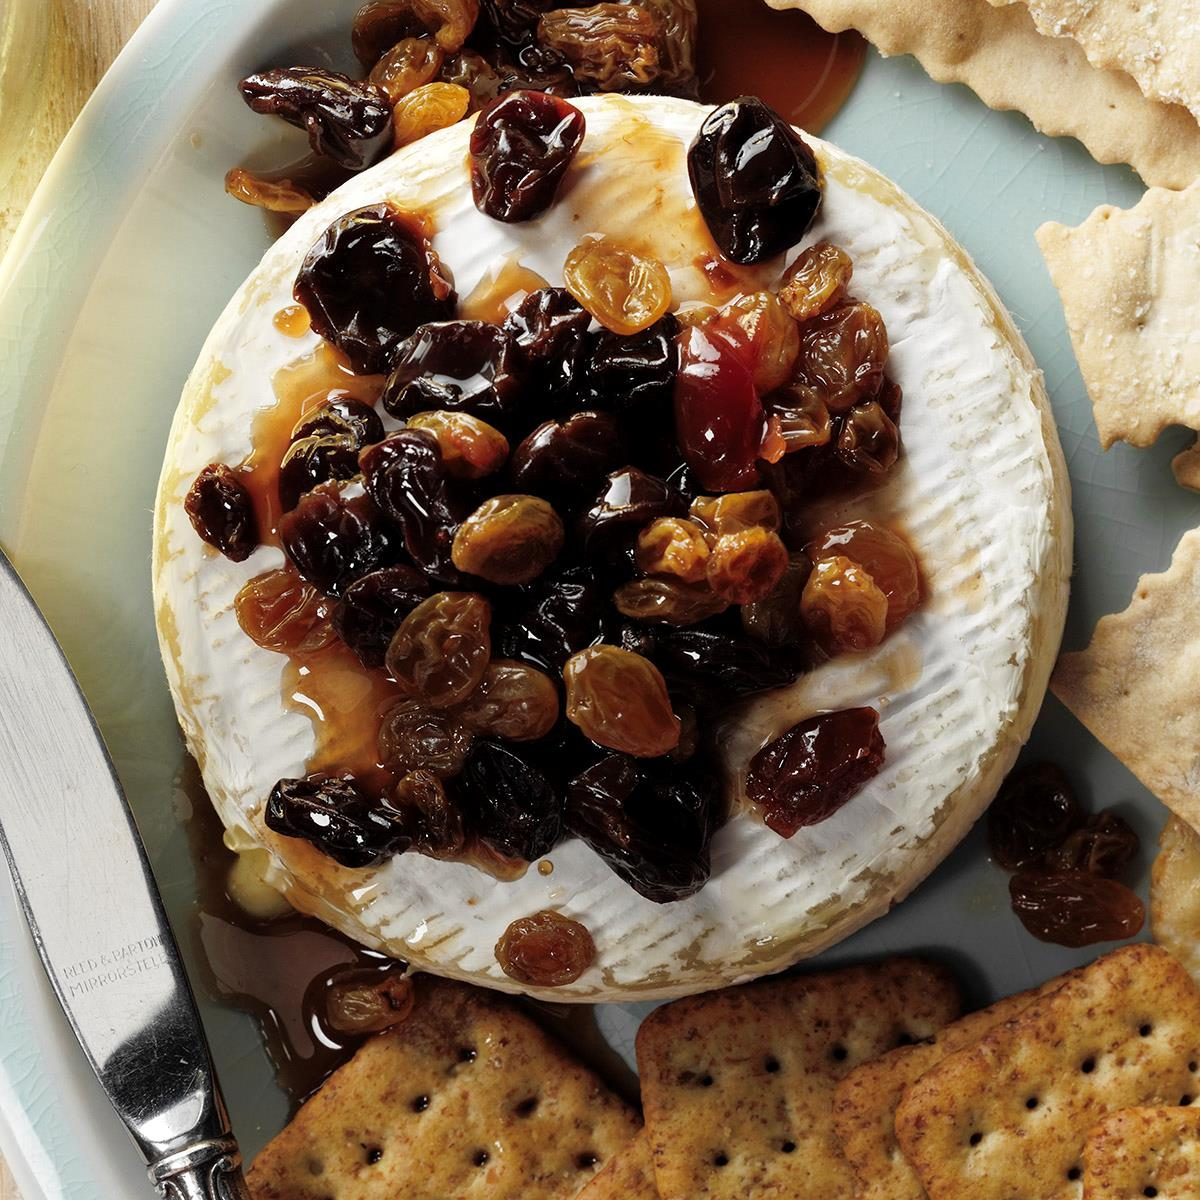 Fruit Compote With Brie